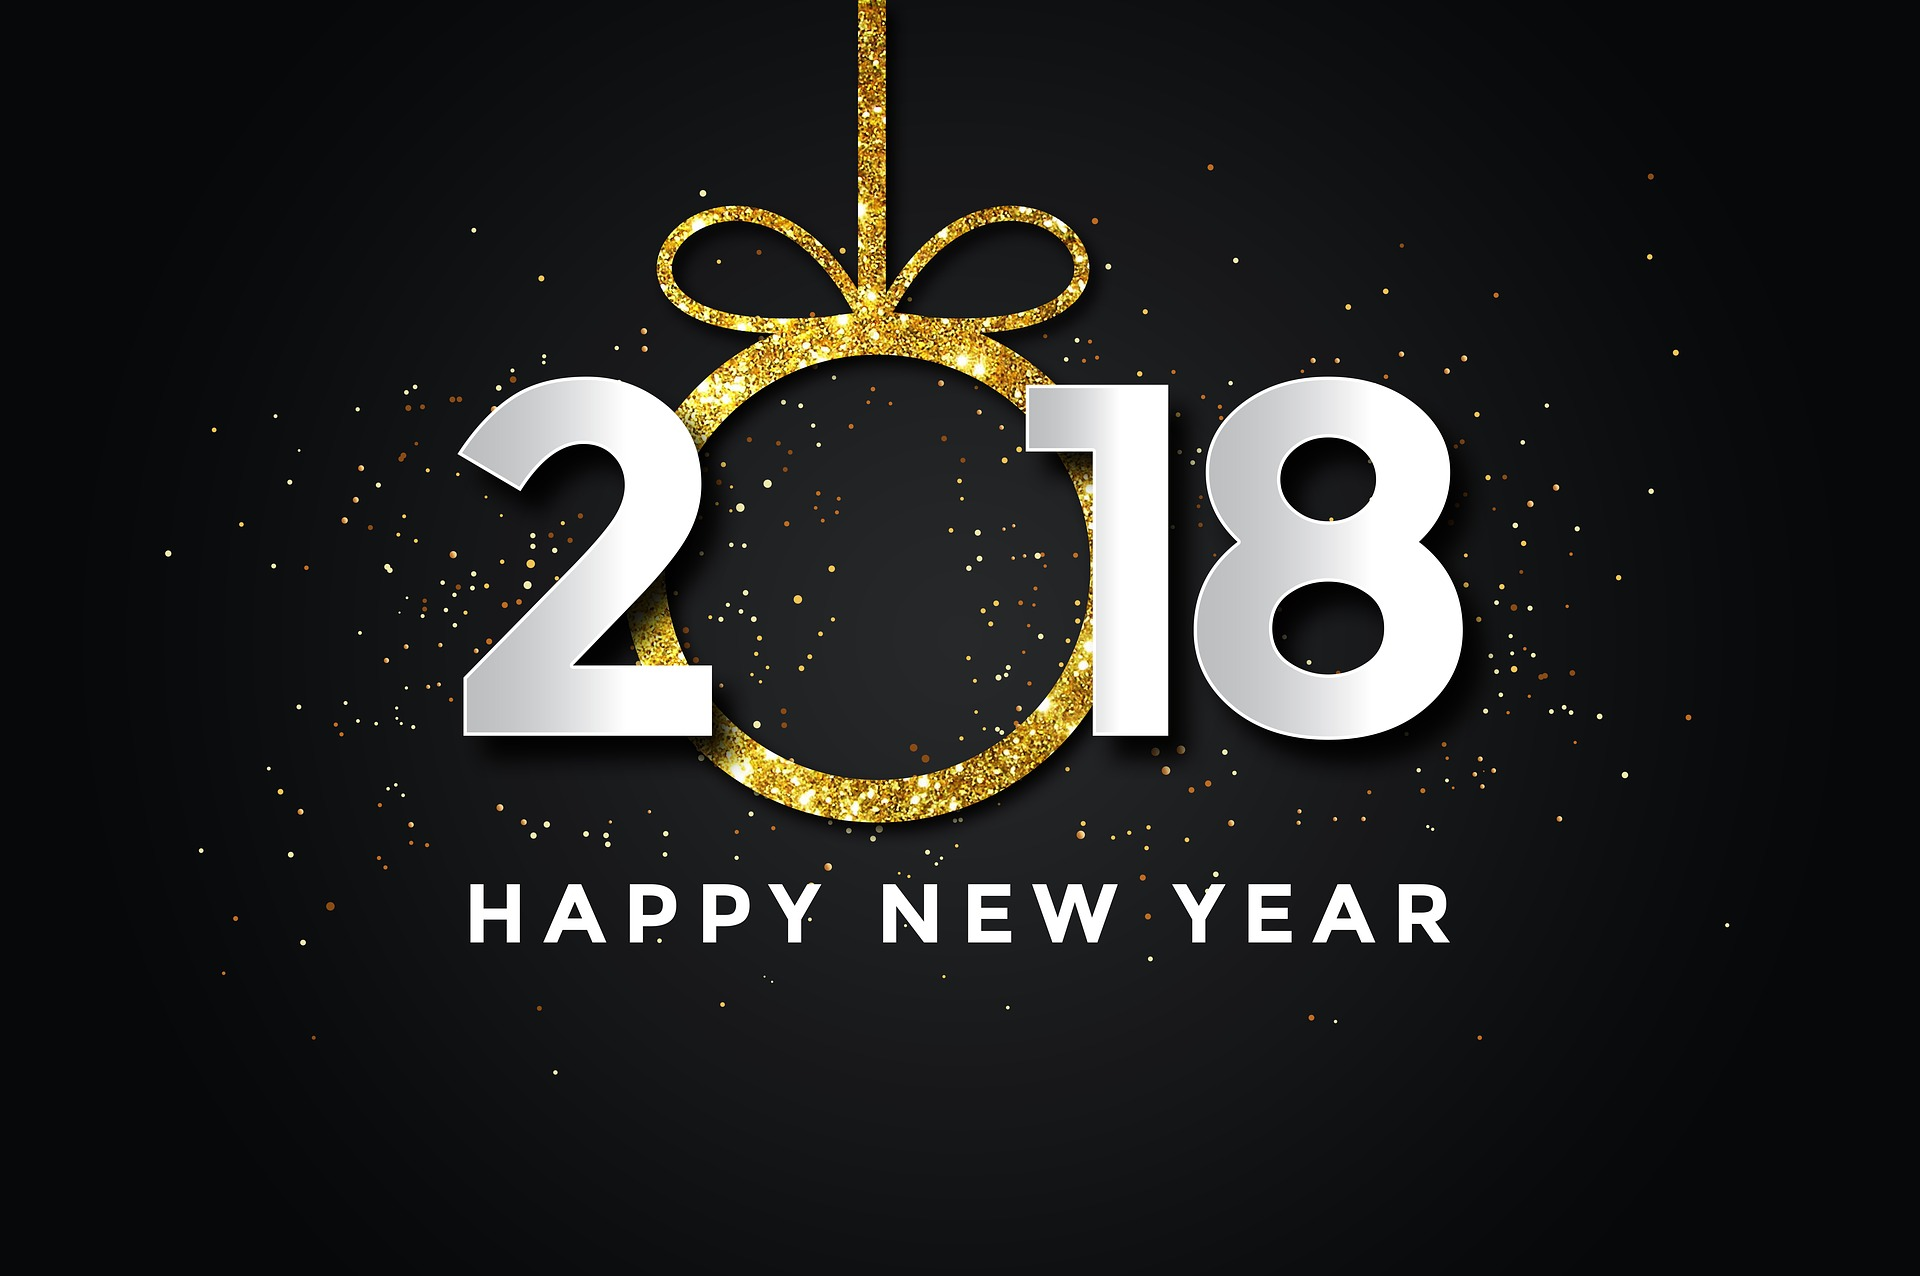 Happy New Year | 2018 | www.patriciabaileyauthor.com